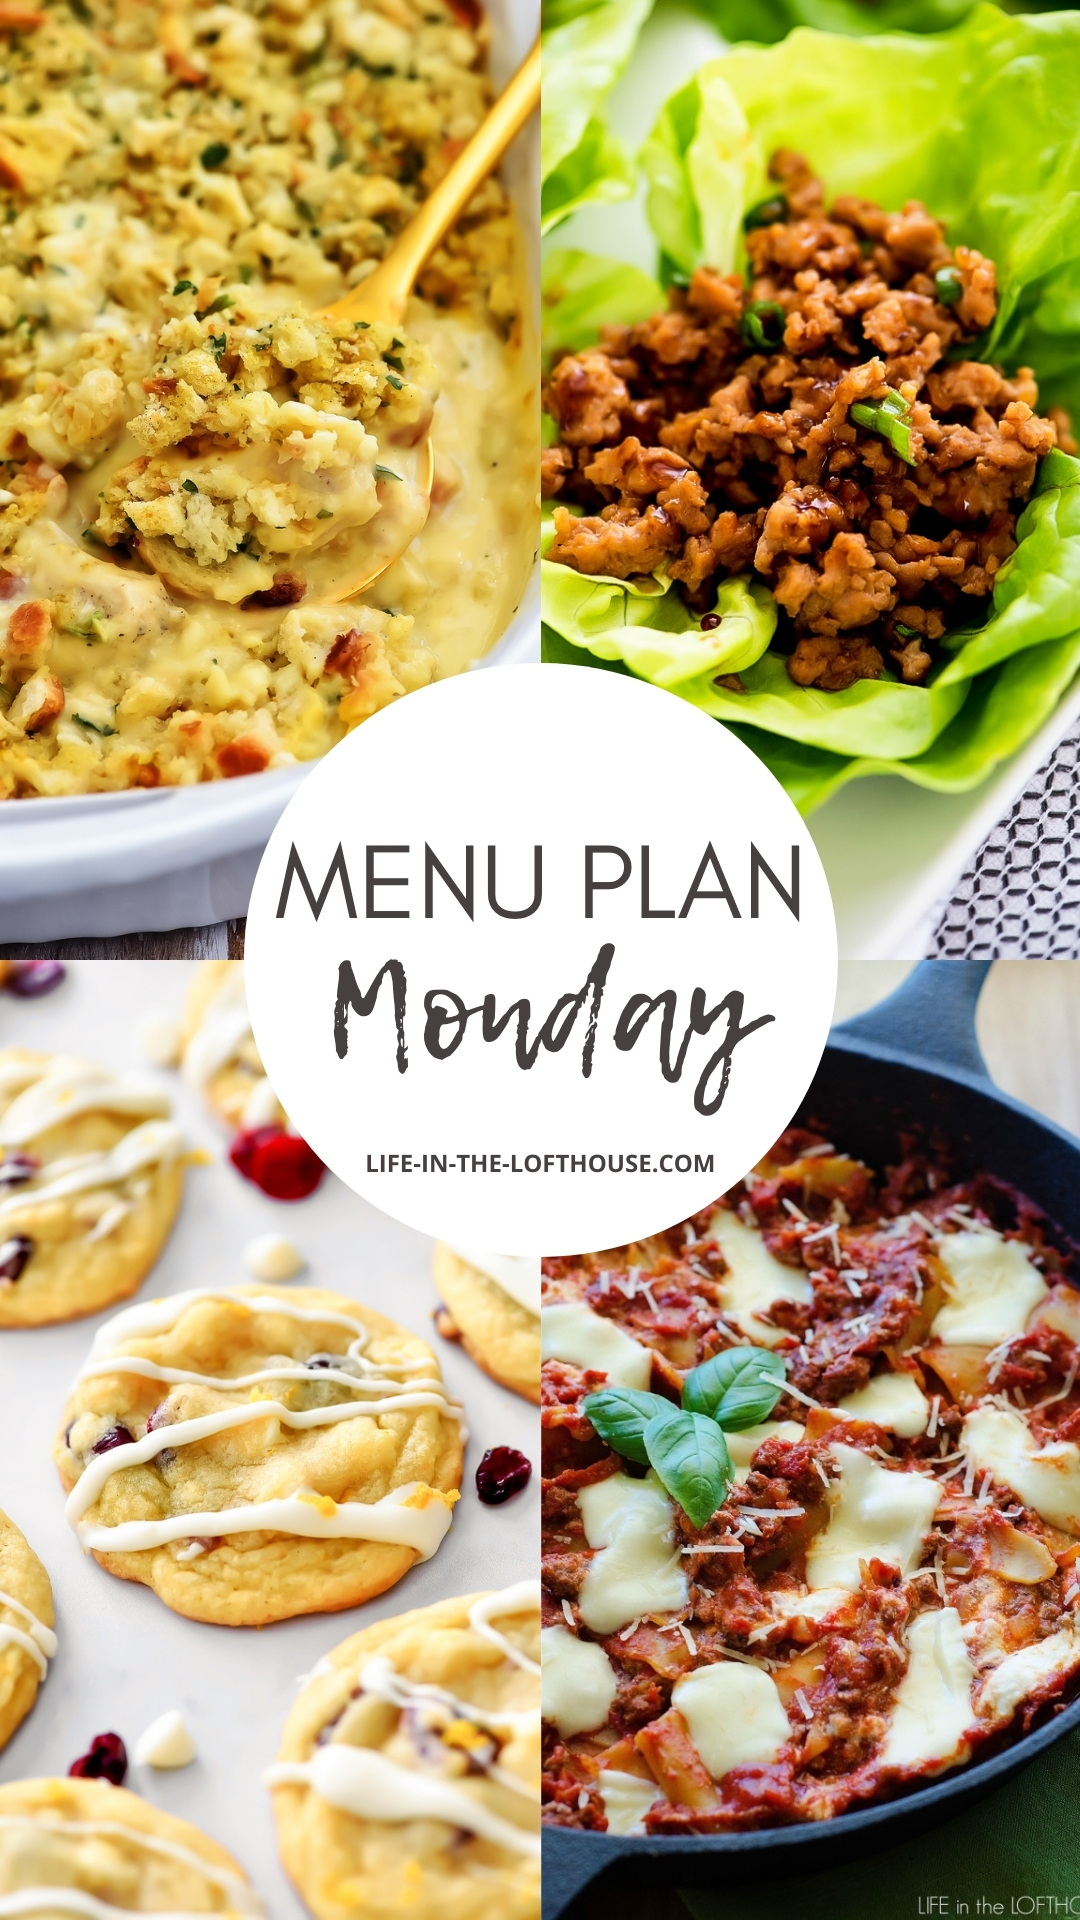 Menu Plan Monday is a list of six dinners and one dessert idea. Life-in-the-Lofthouse.com